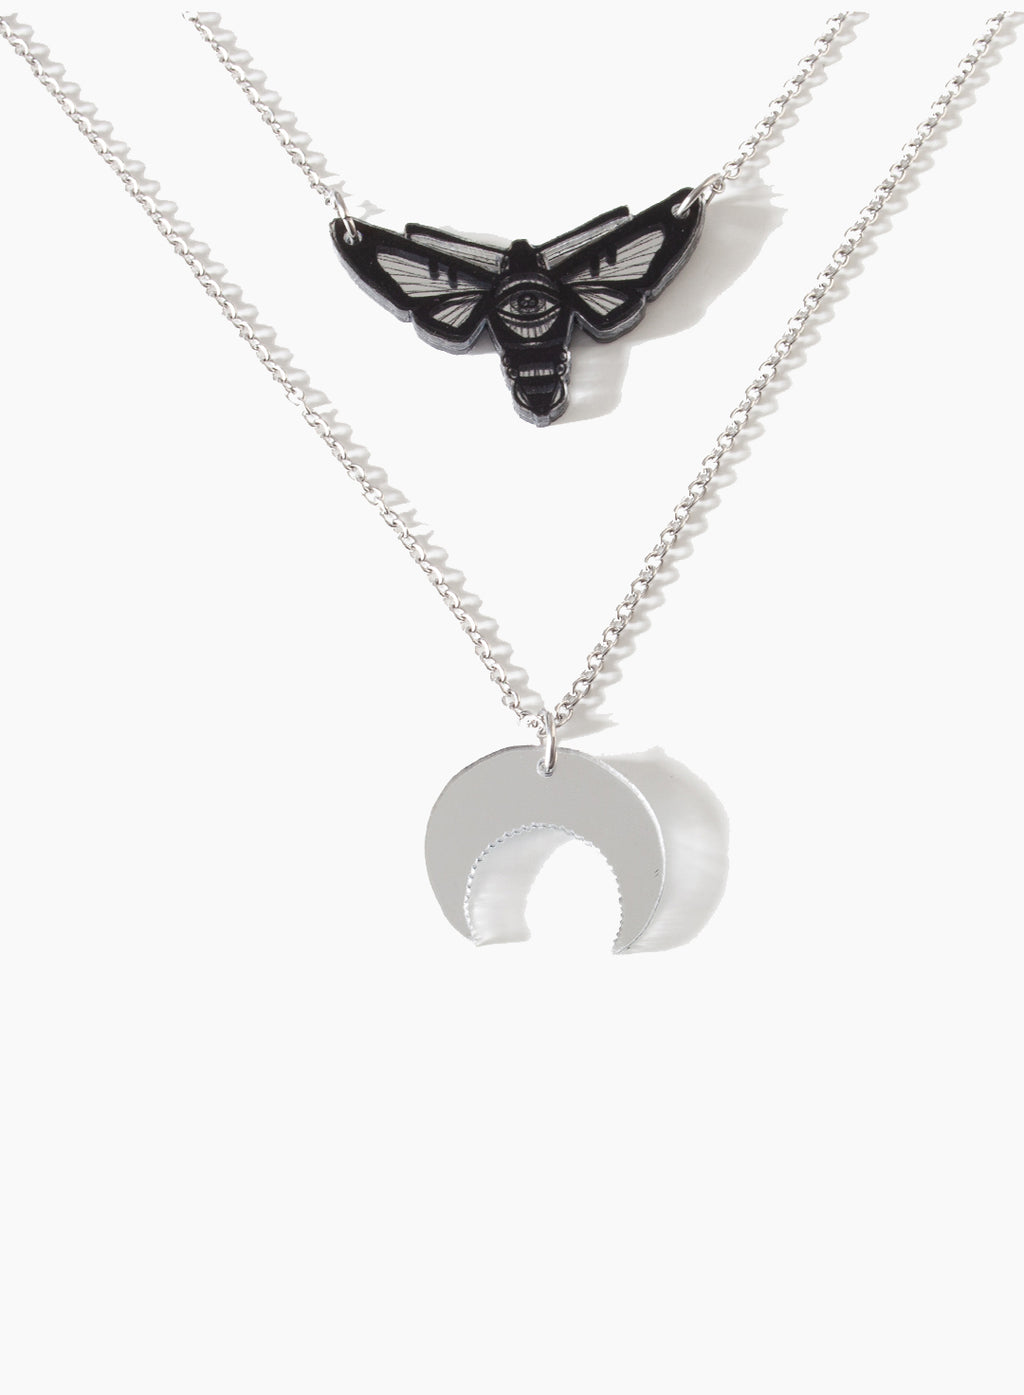 AW19 Mineatures Hawkmoth Charm Necklace, Double Sided Mirror